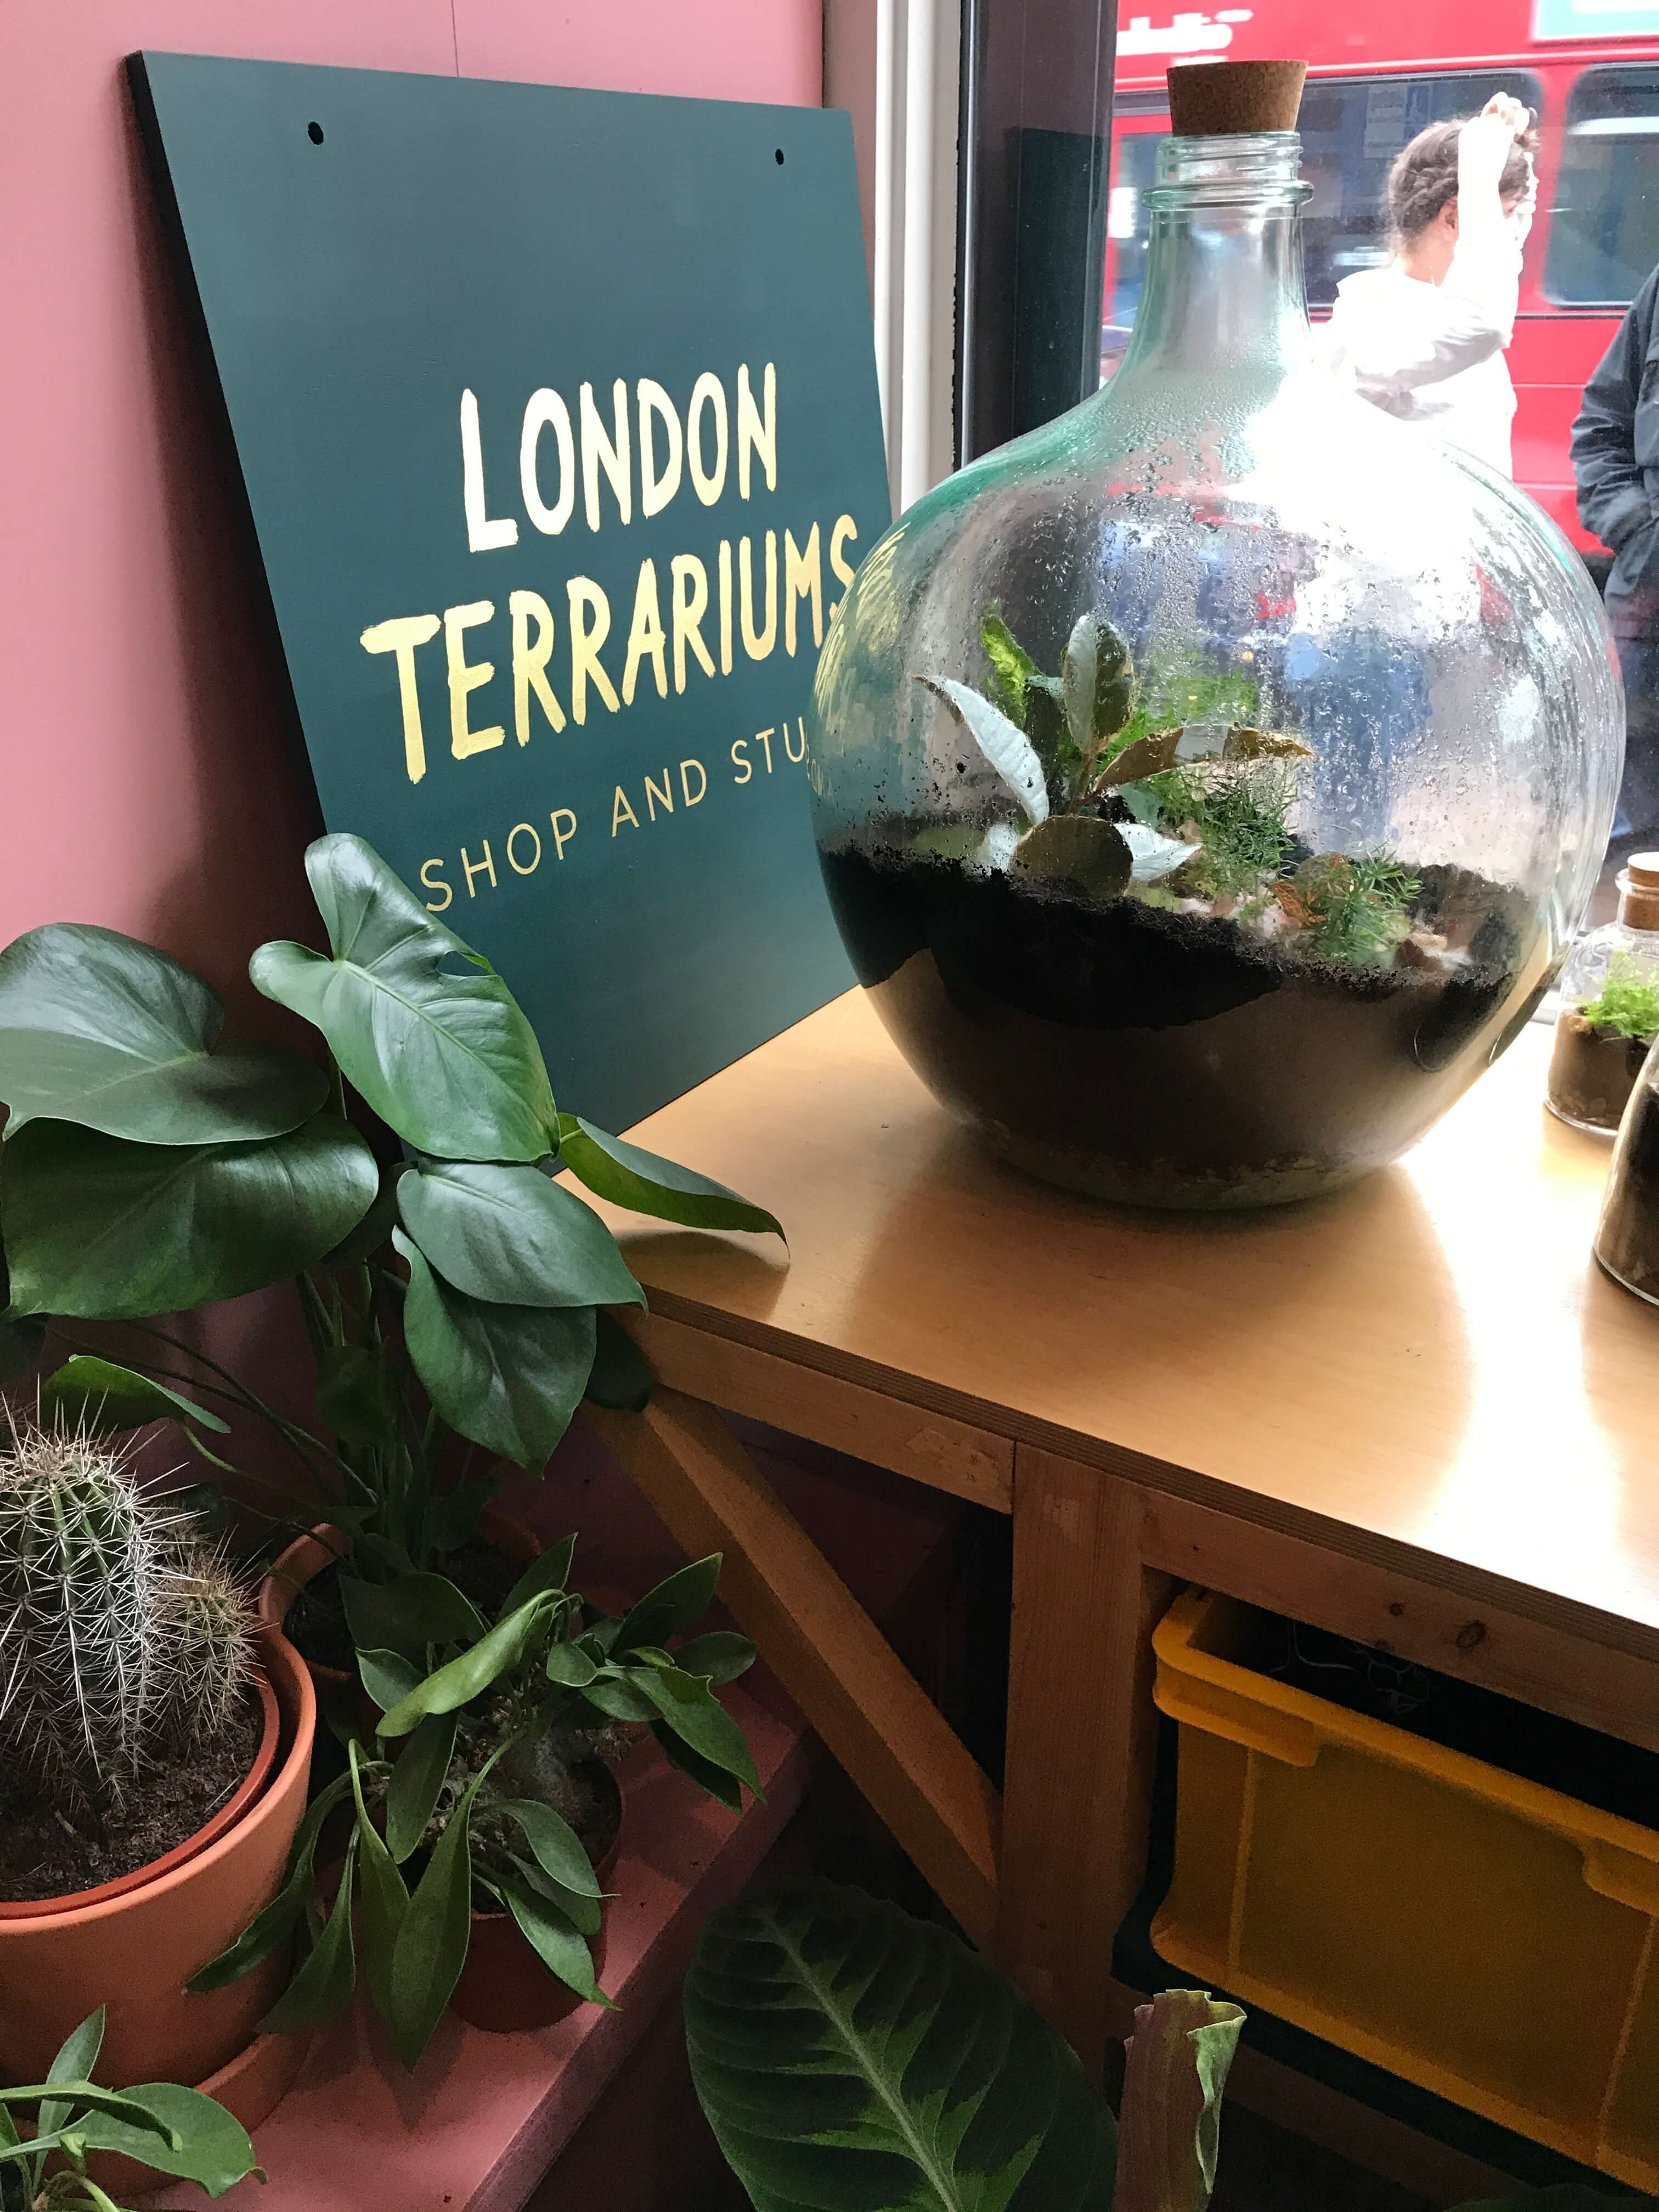 London Terrariums Emma Sibley Freedom To Exist